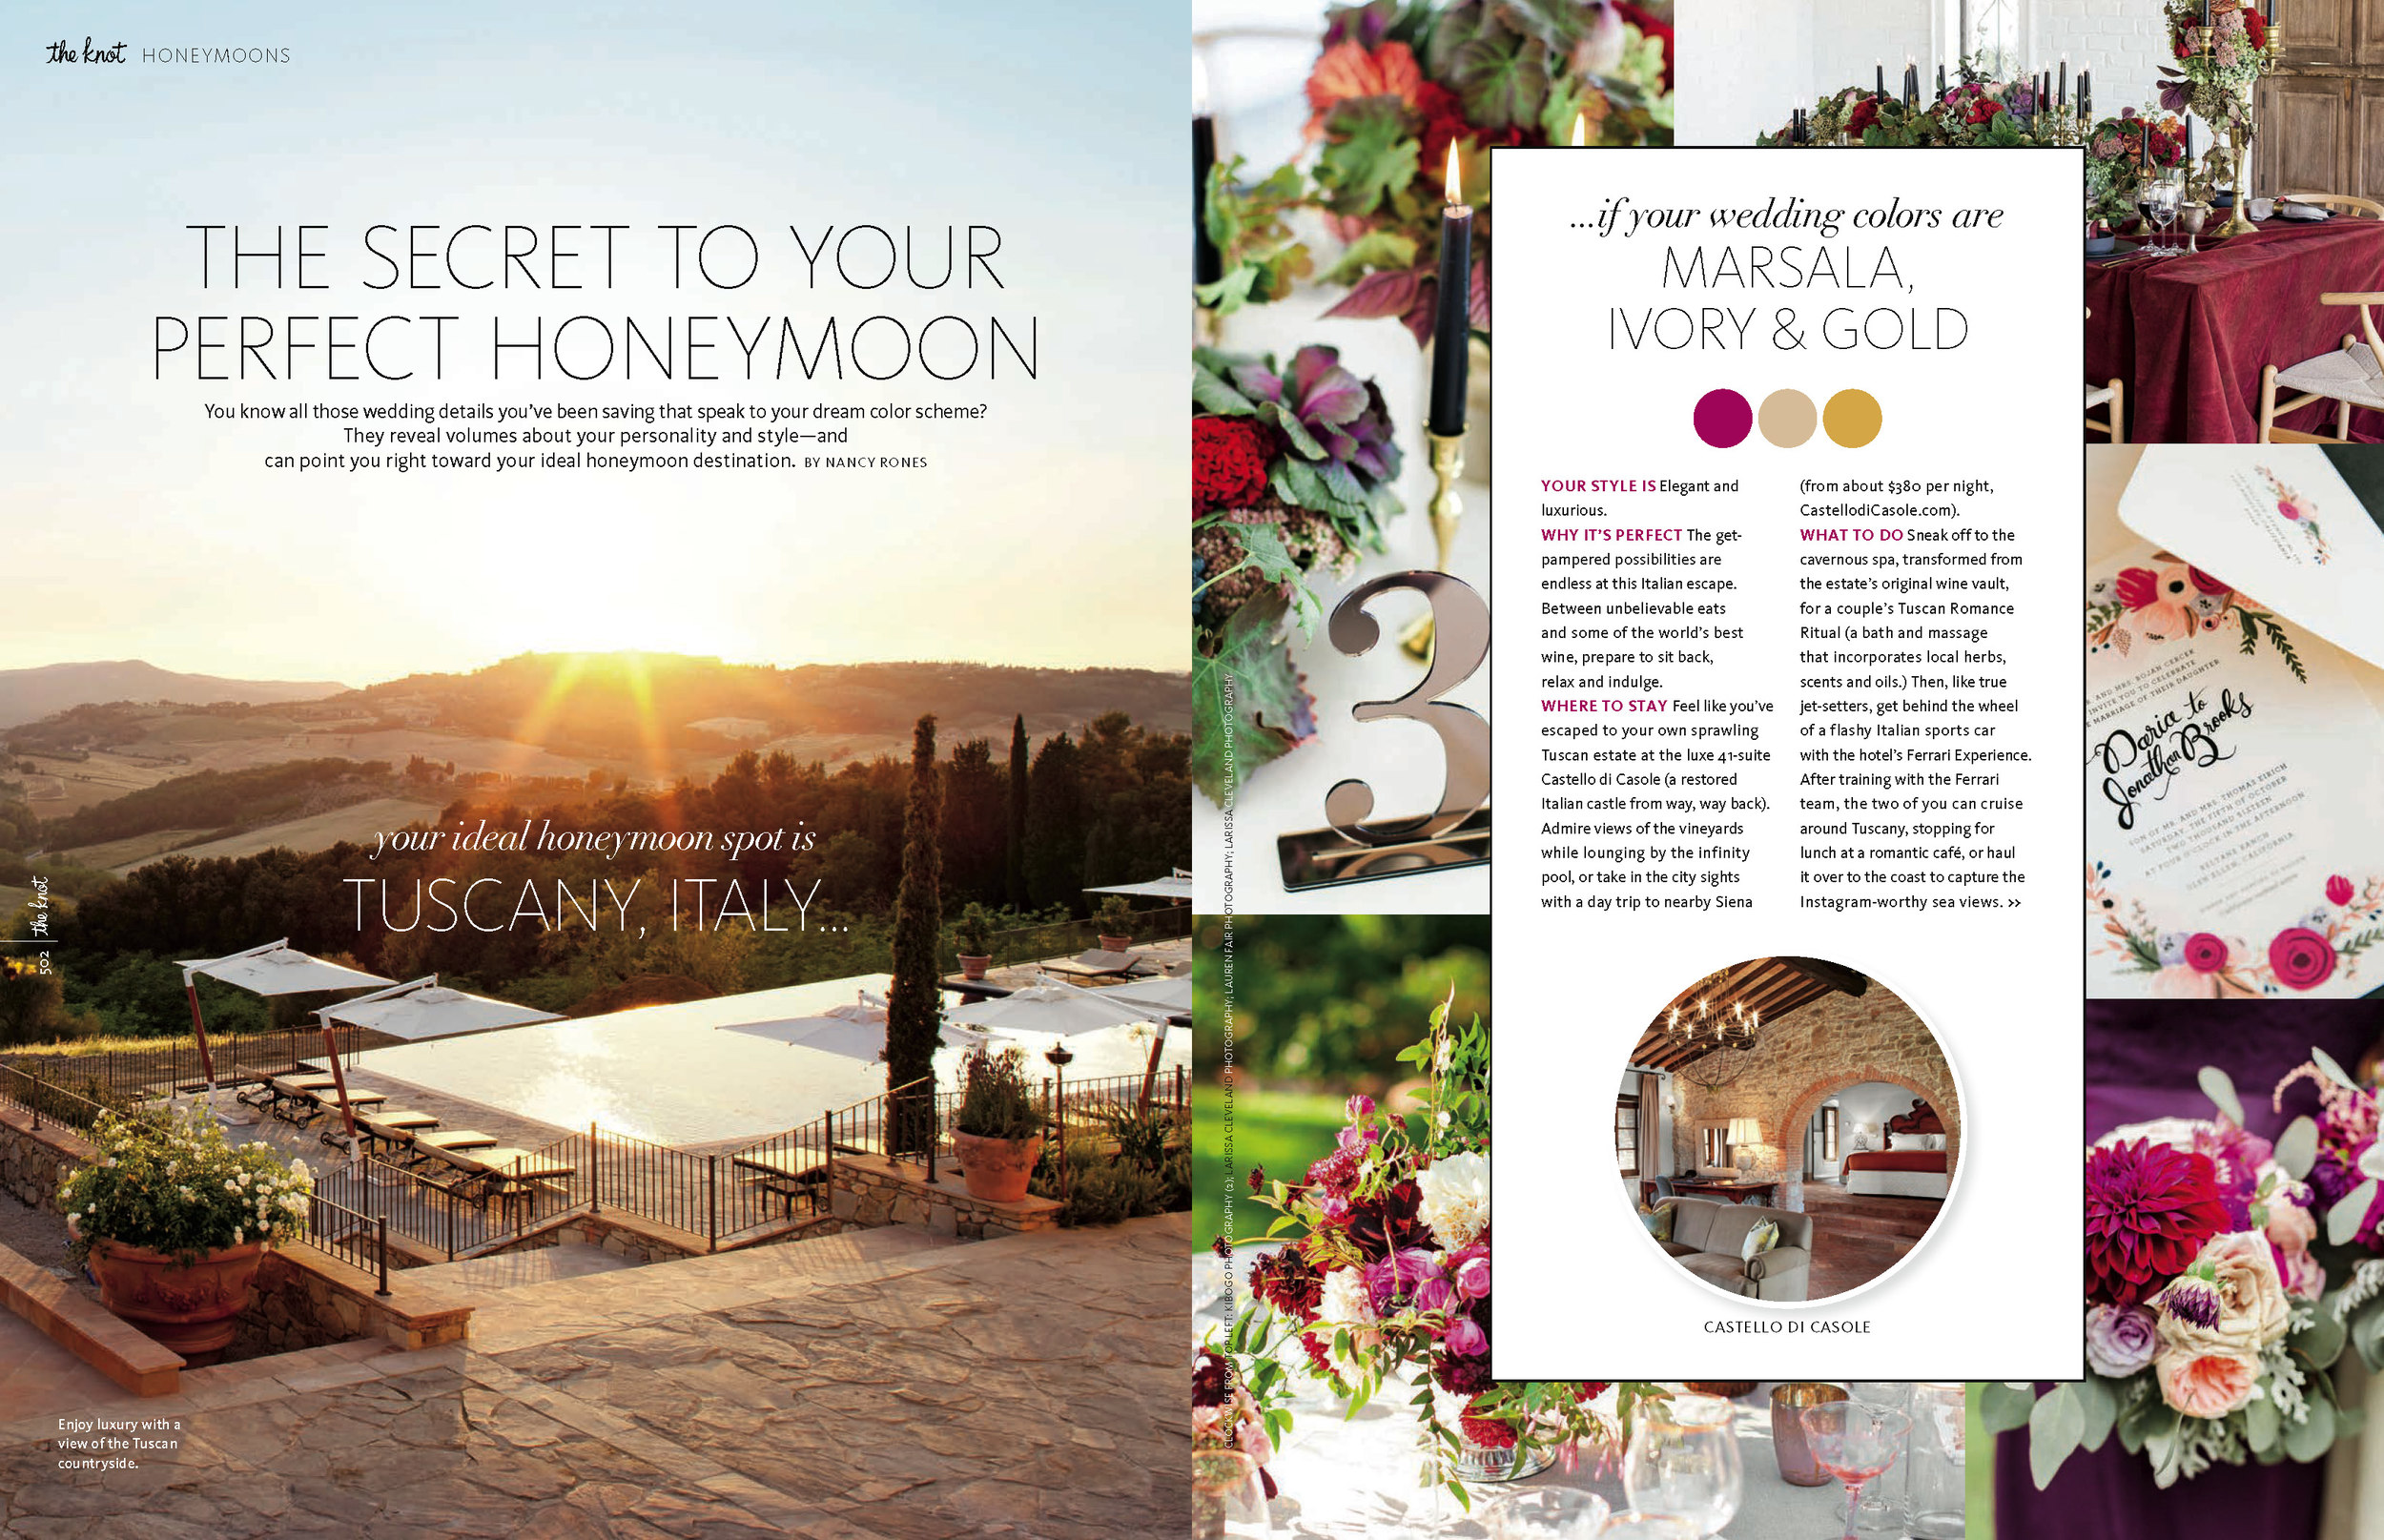 theknot_Page_08.jpg